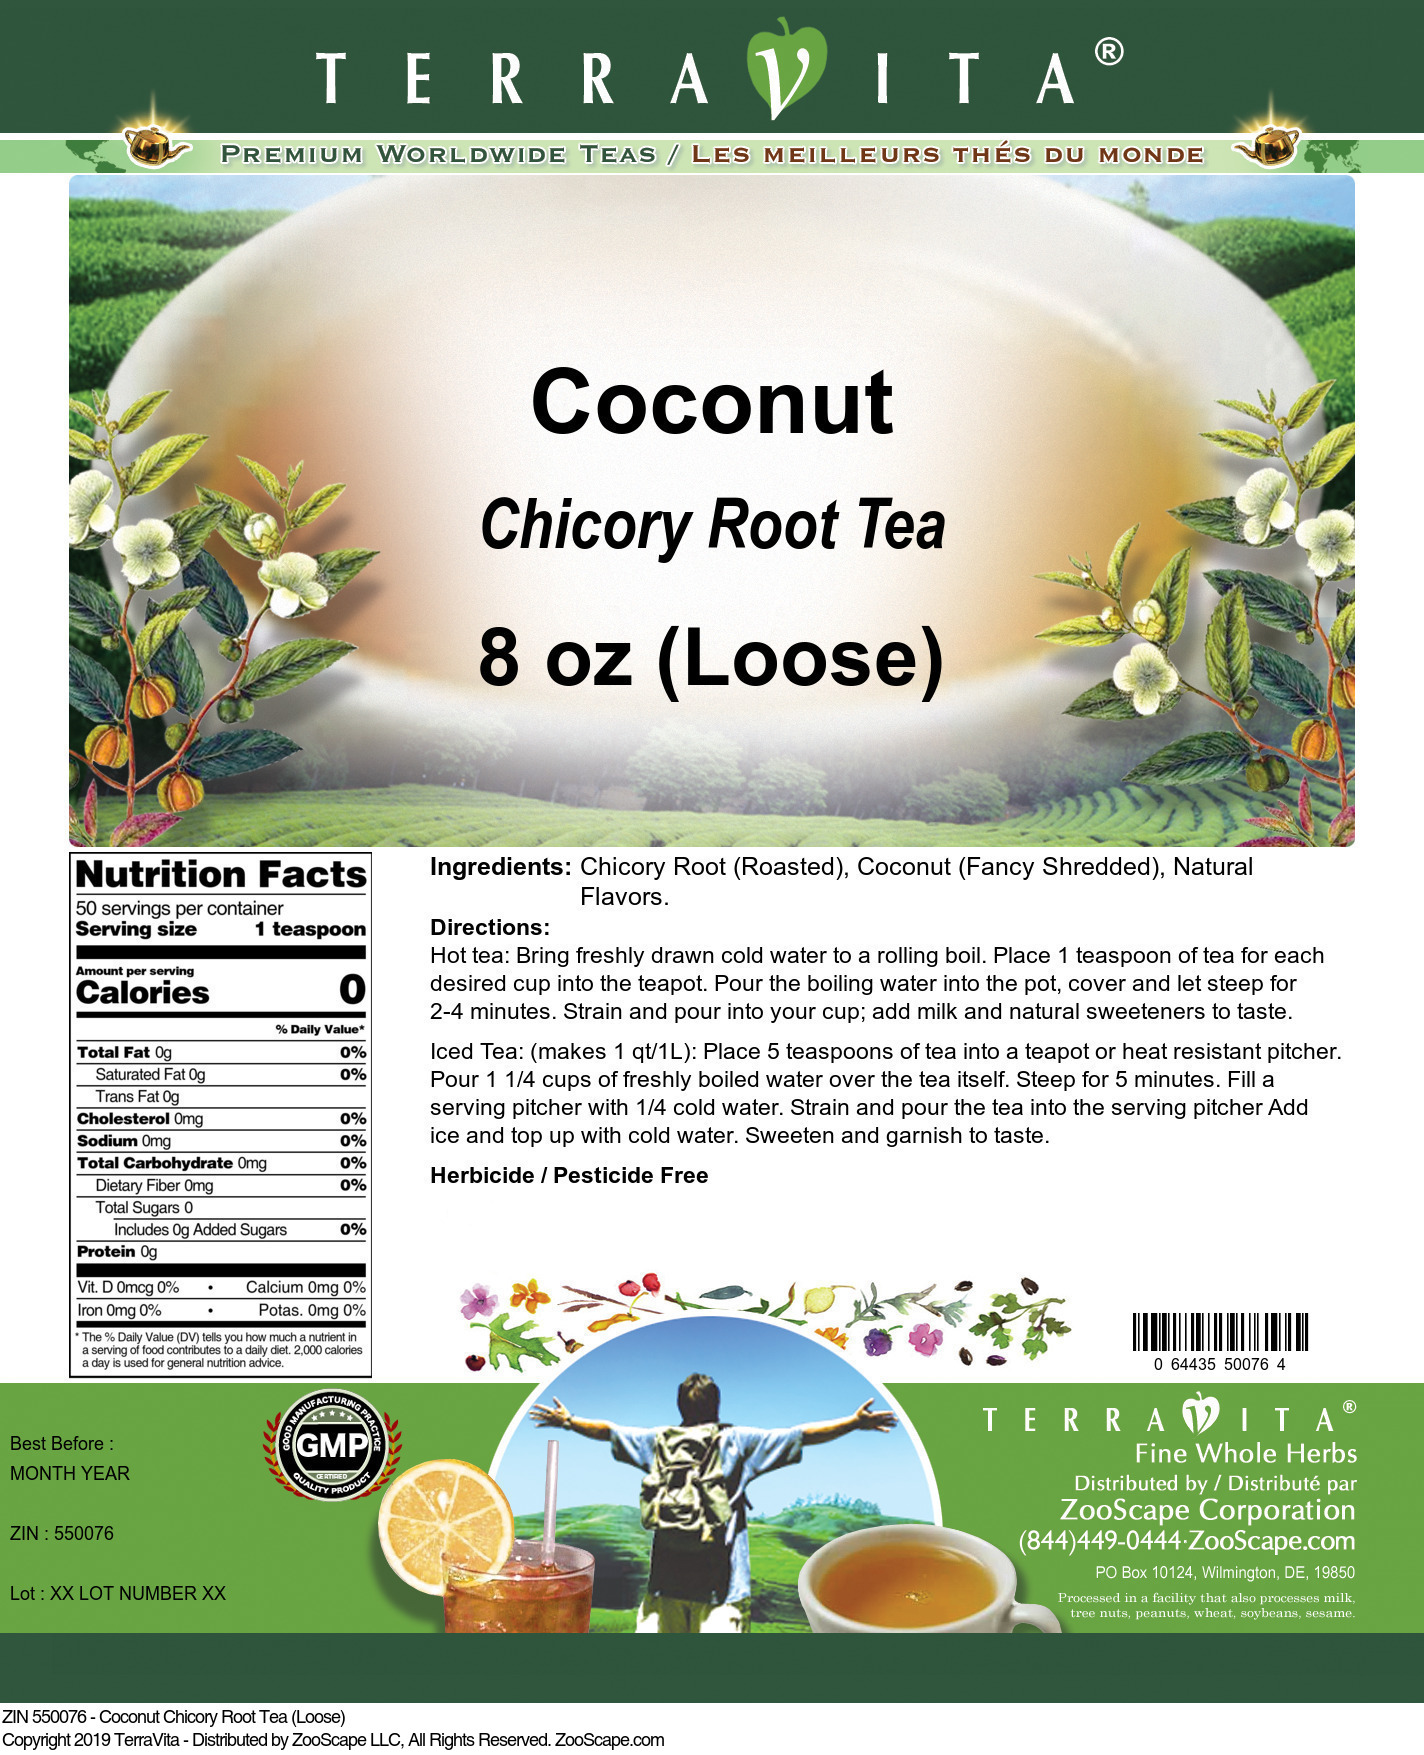 Coconut Chicory Root